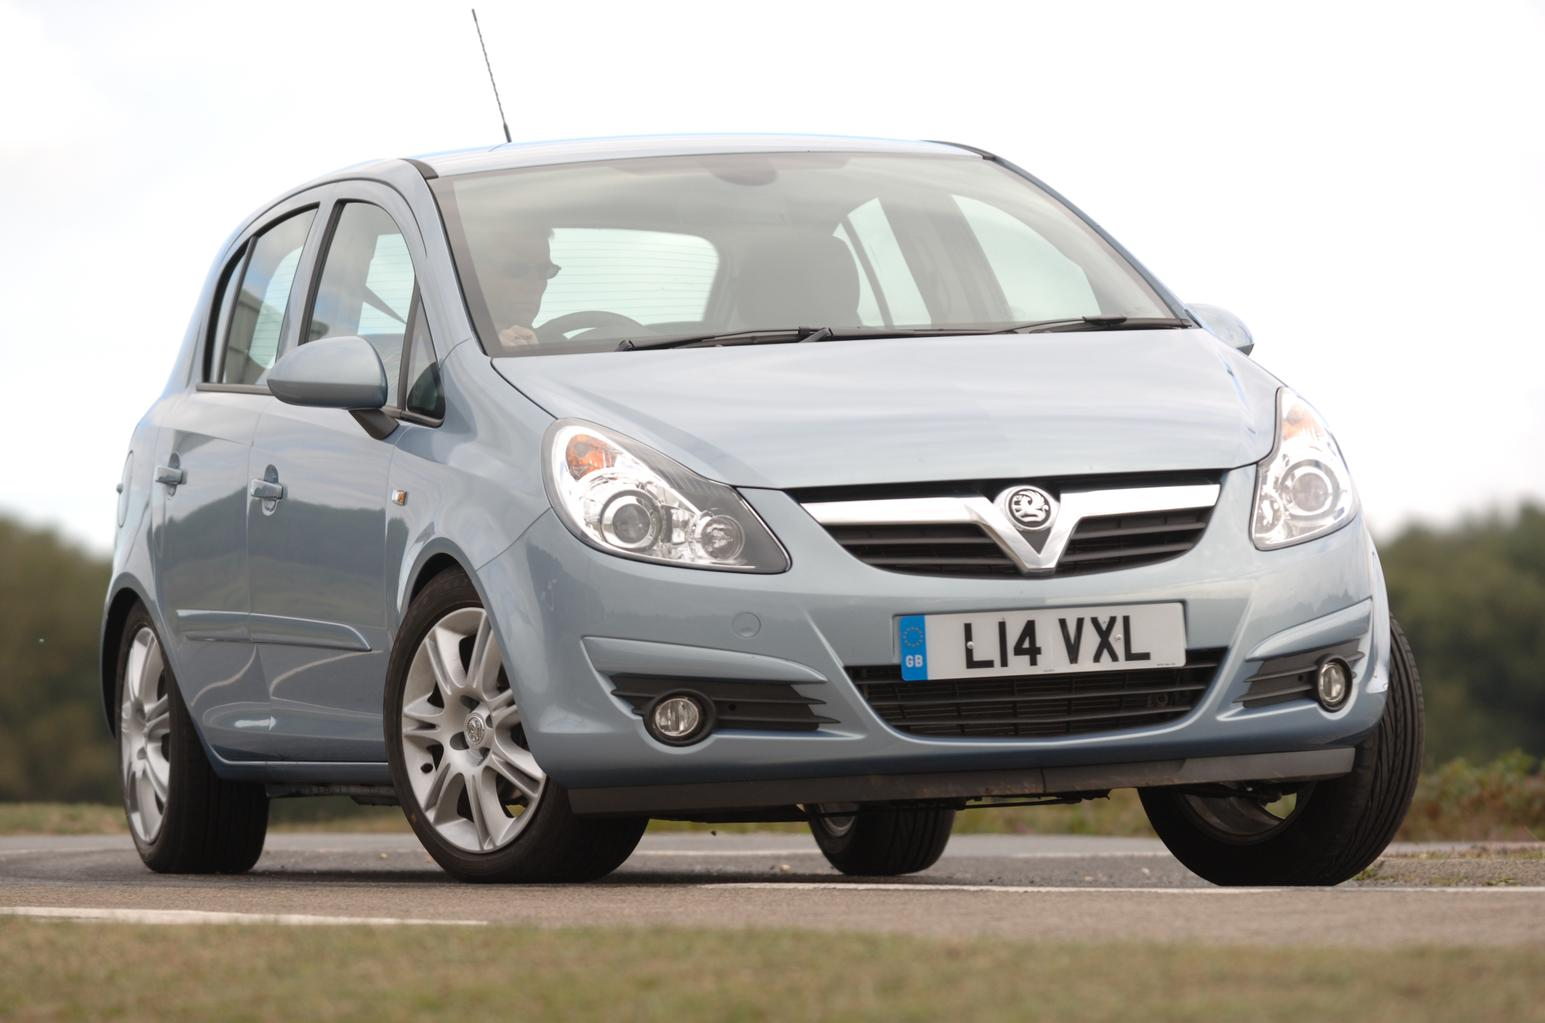 5 reasons to buy a Vauxhall Corsa